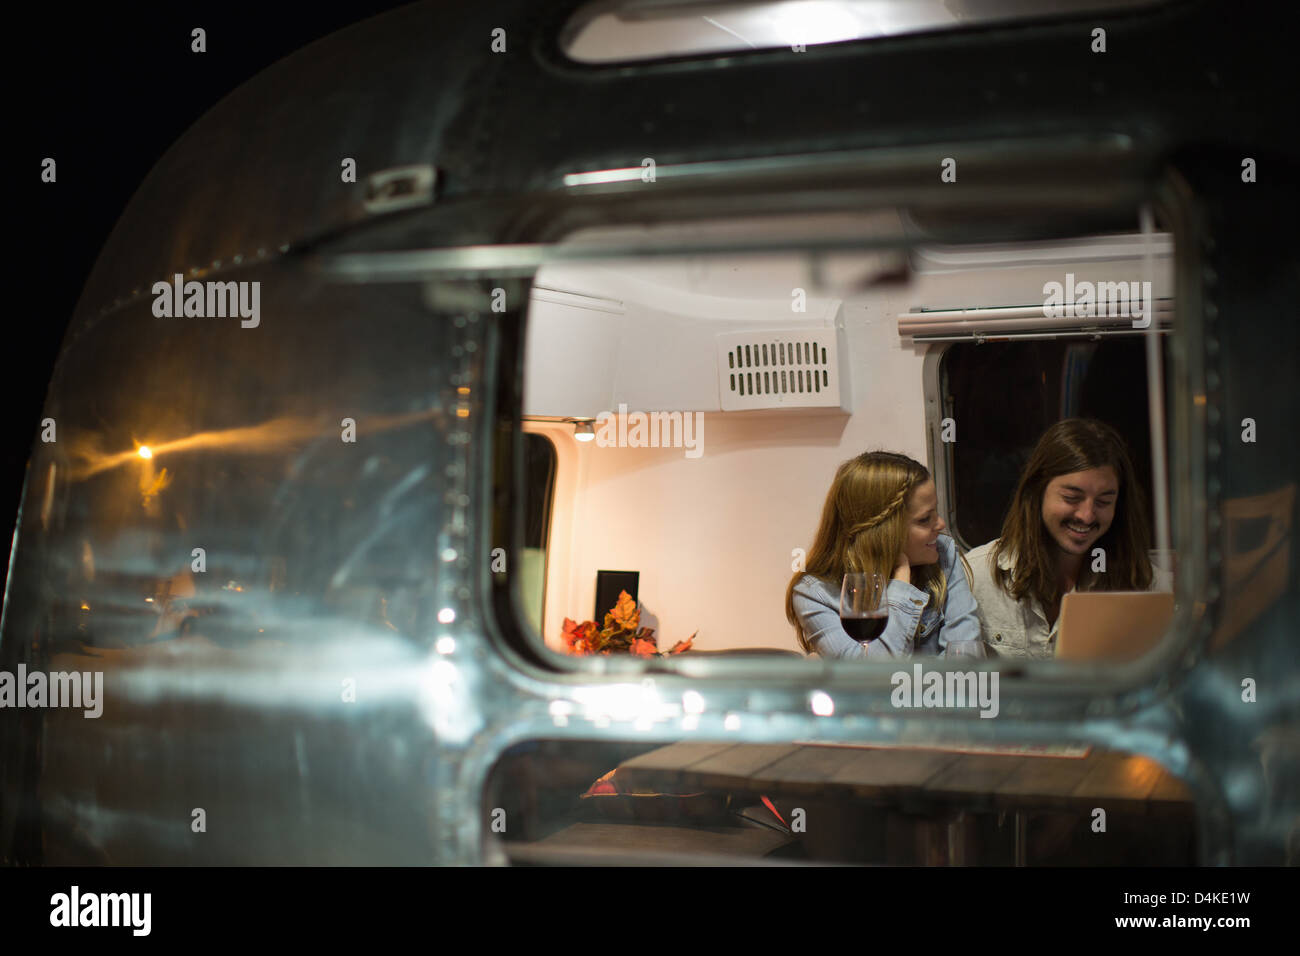 Couple relaxing together in trailer - Stock Image